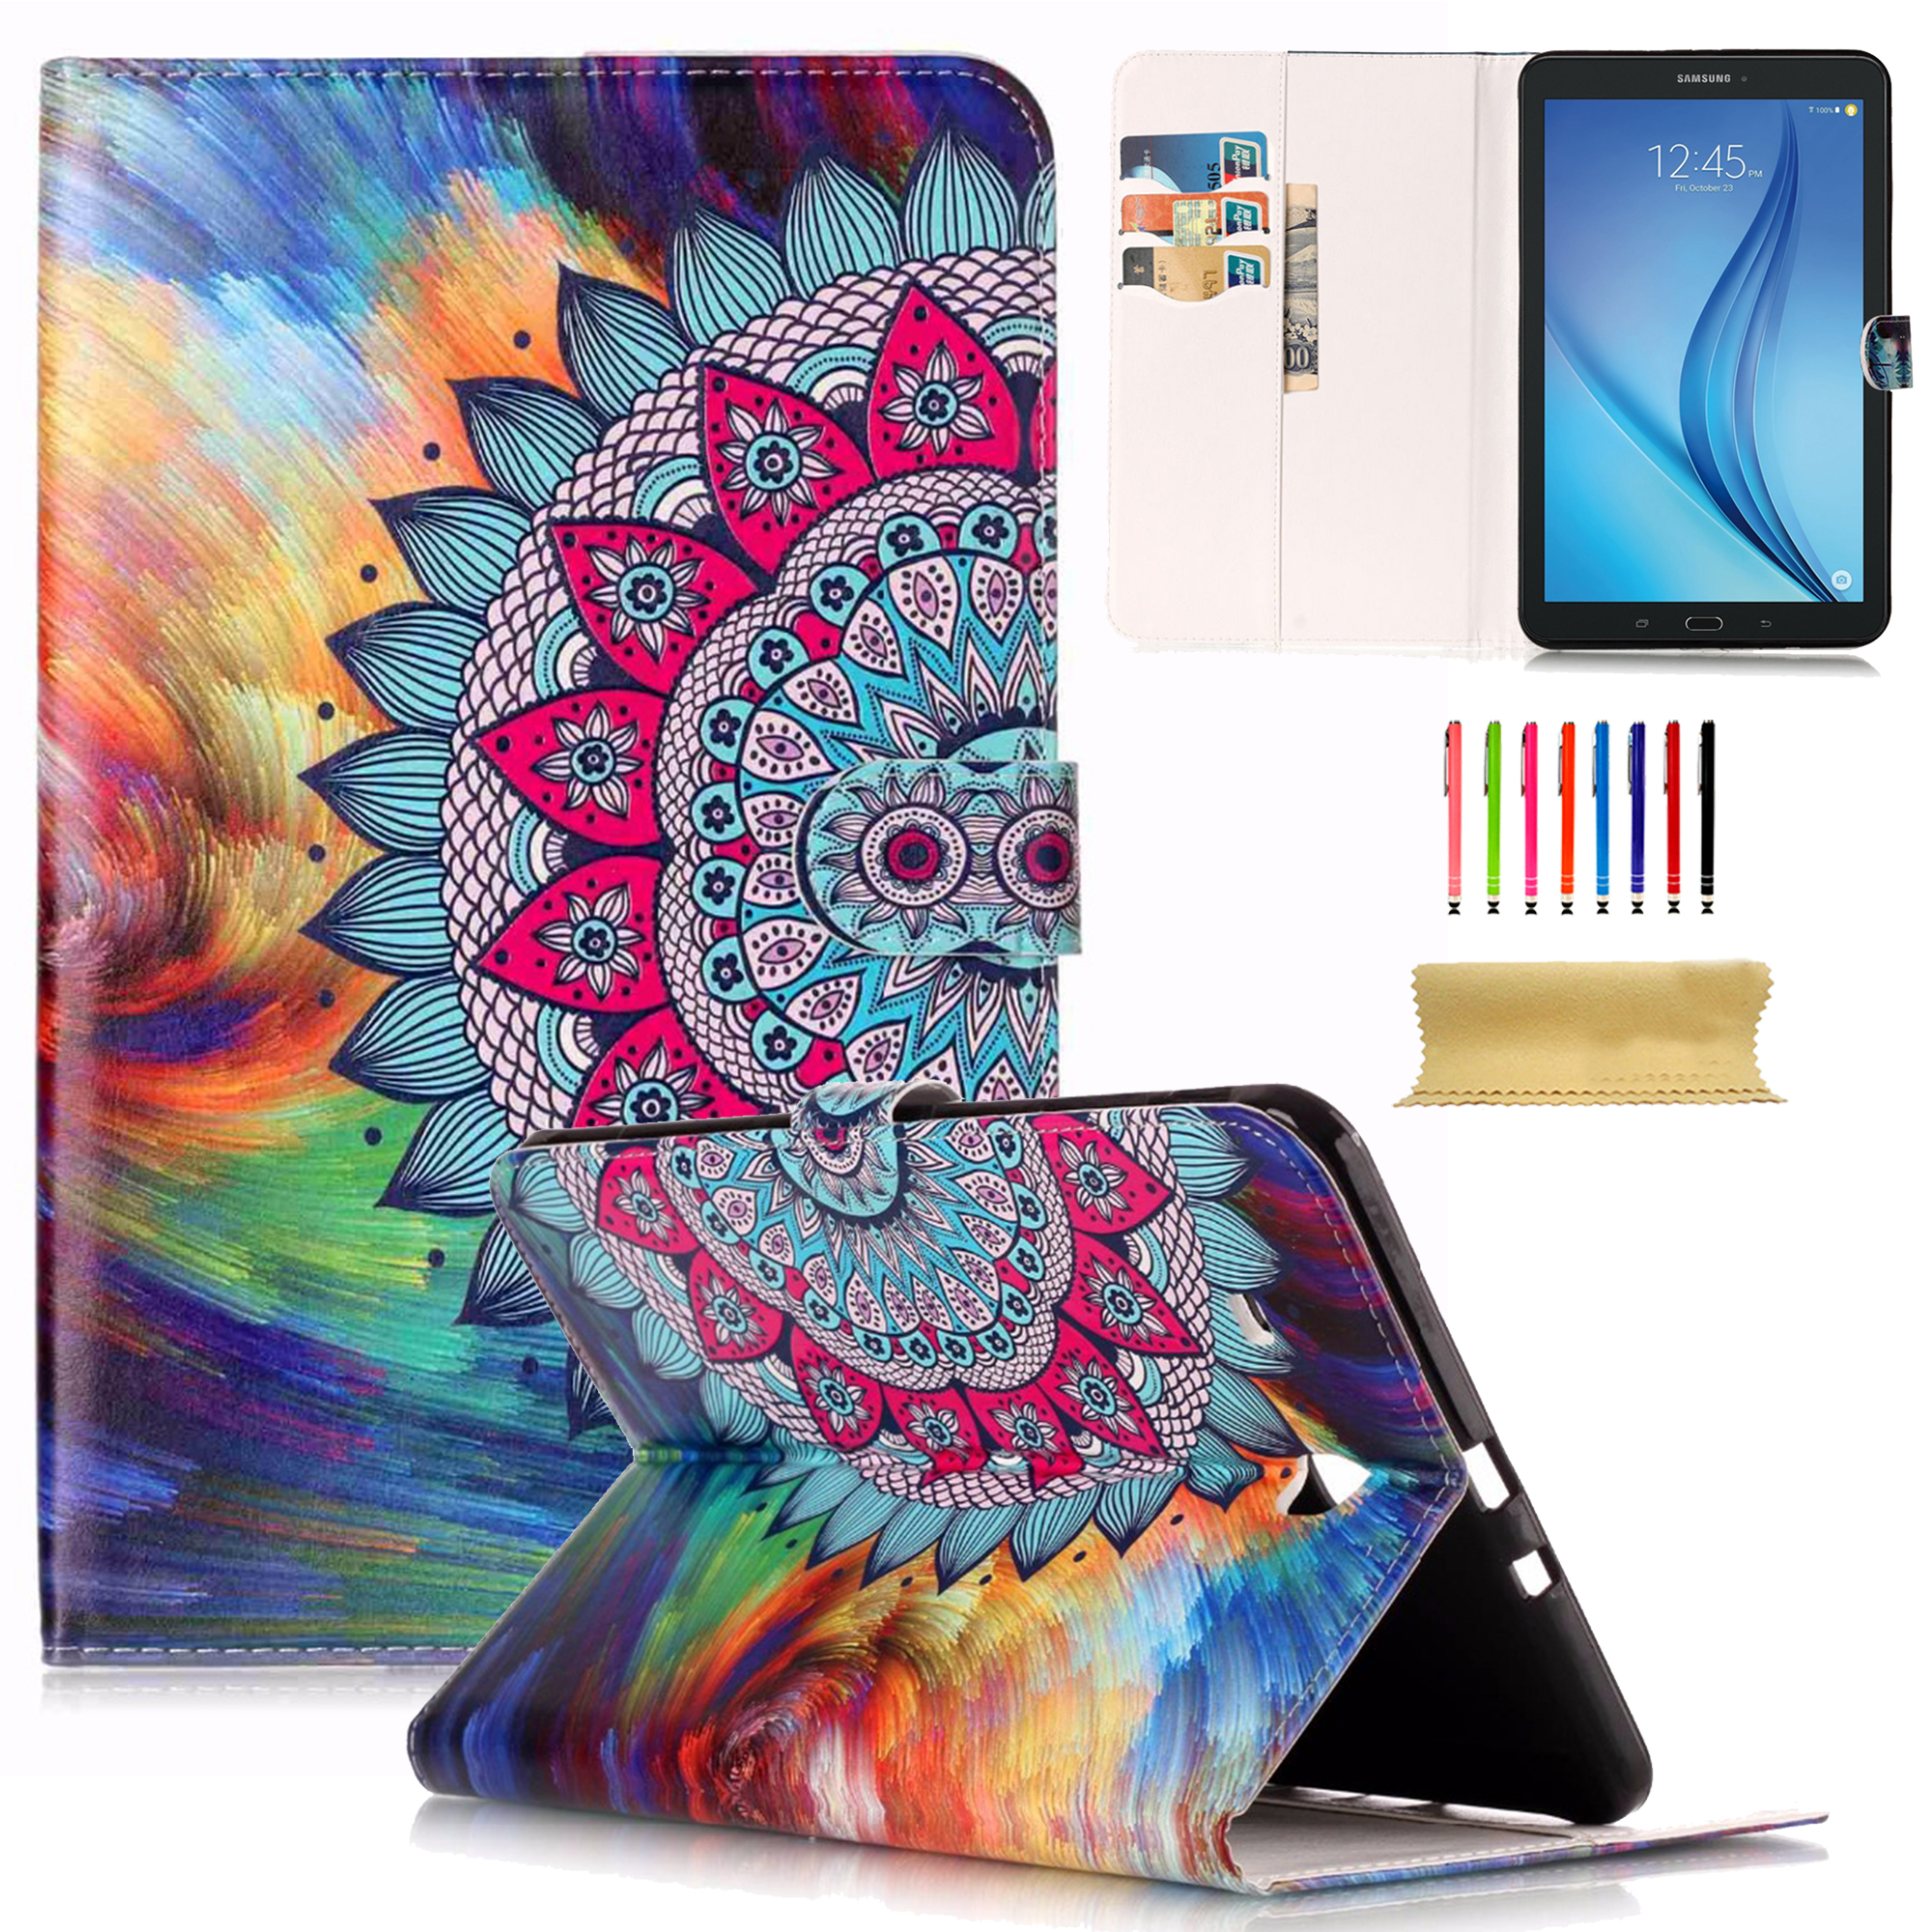 "Galaxy Tab E 9.6 Case, Goodest Folio Stand Cover for Samsung Galaxy Tab E 9.6""/ Tab E Nook 9.6-Inch Tablet (SM-T560 / T561 / T565 and SM-T567V Verizon 4G LTE Version)(Not Fit T560NU), Sun Flower"